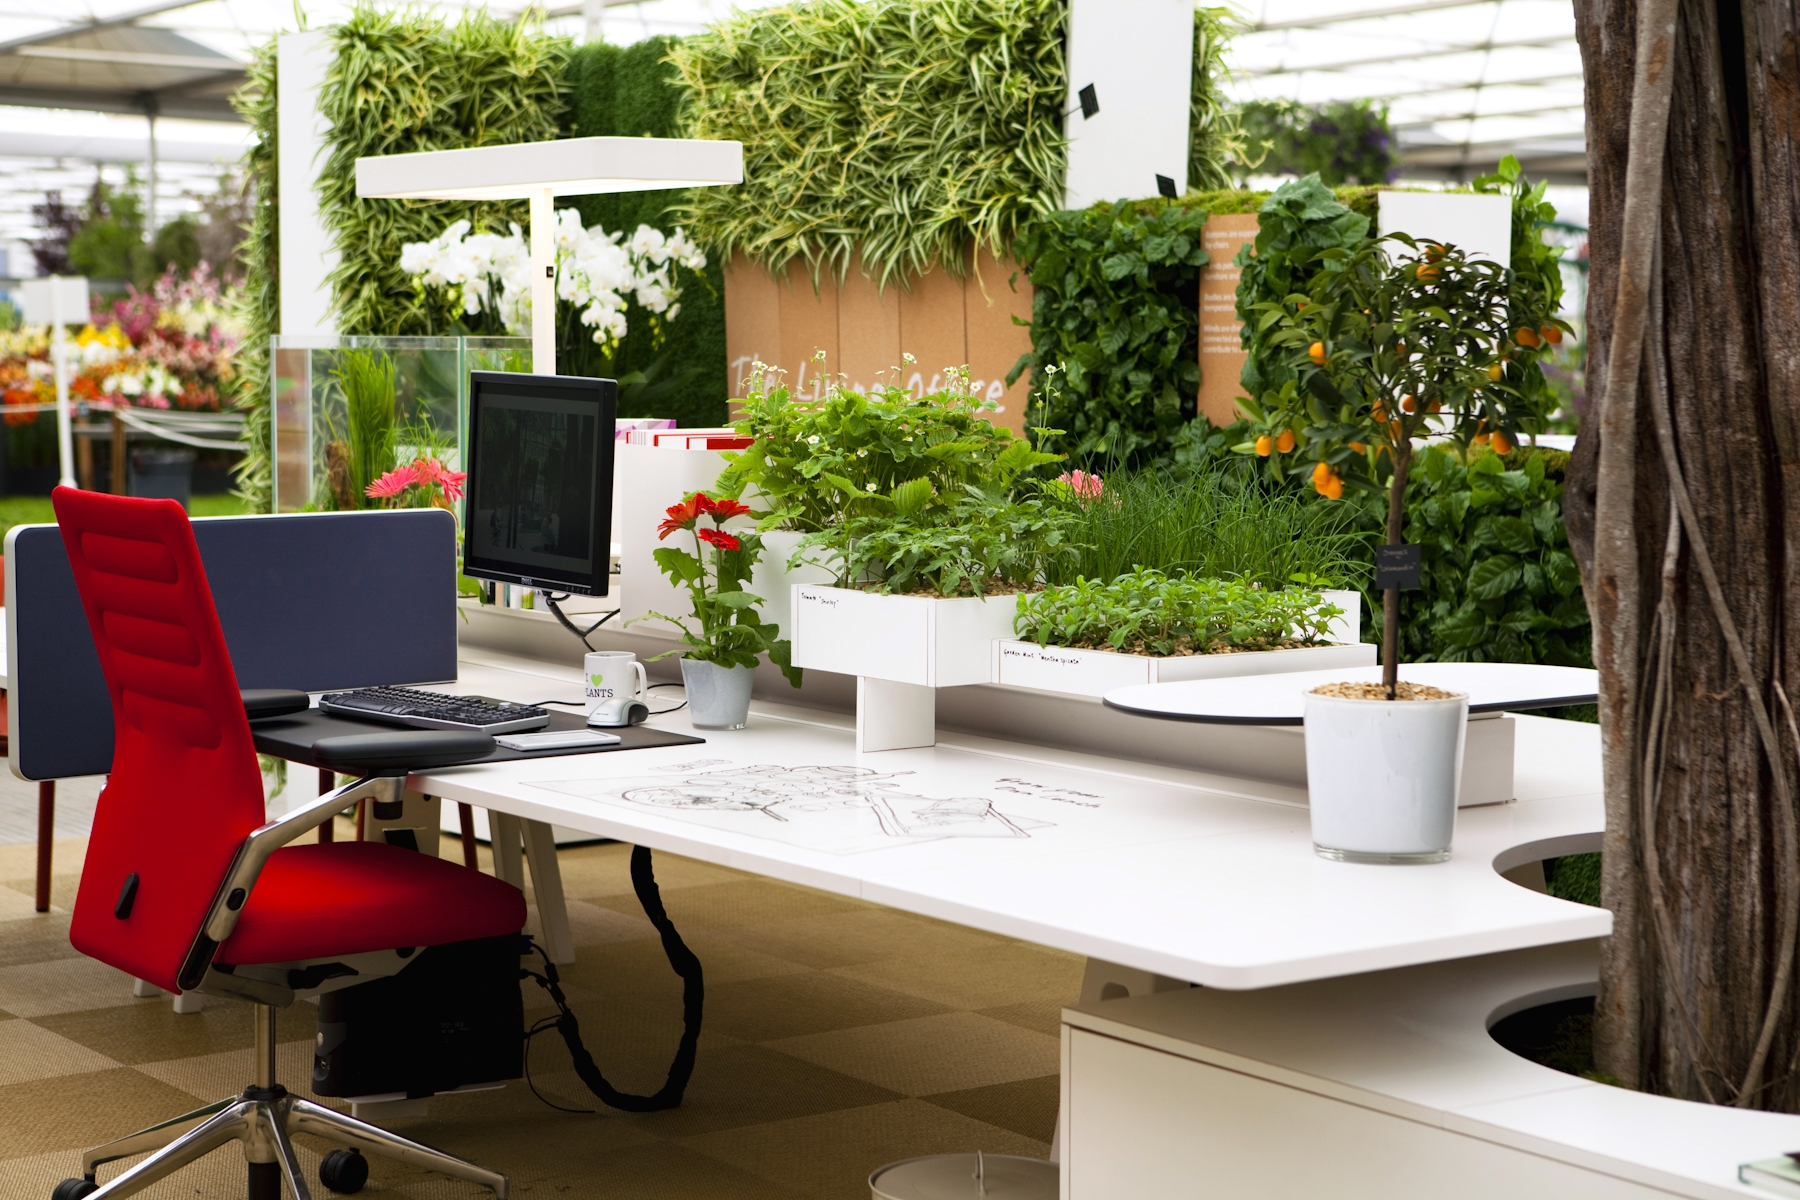 Plants In Offices Increase Happiness And Productivity